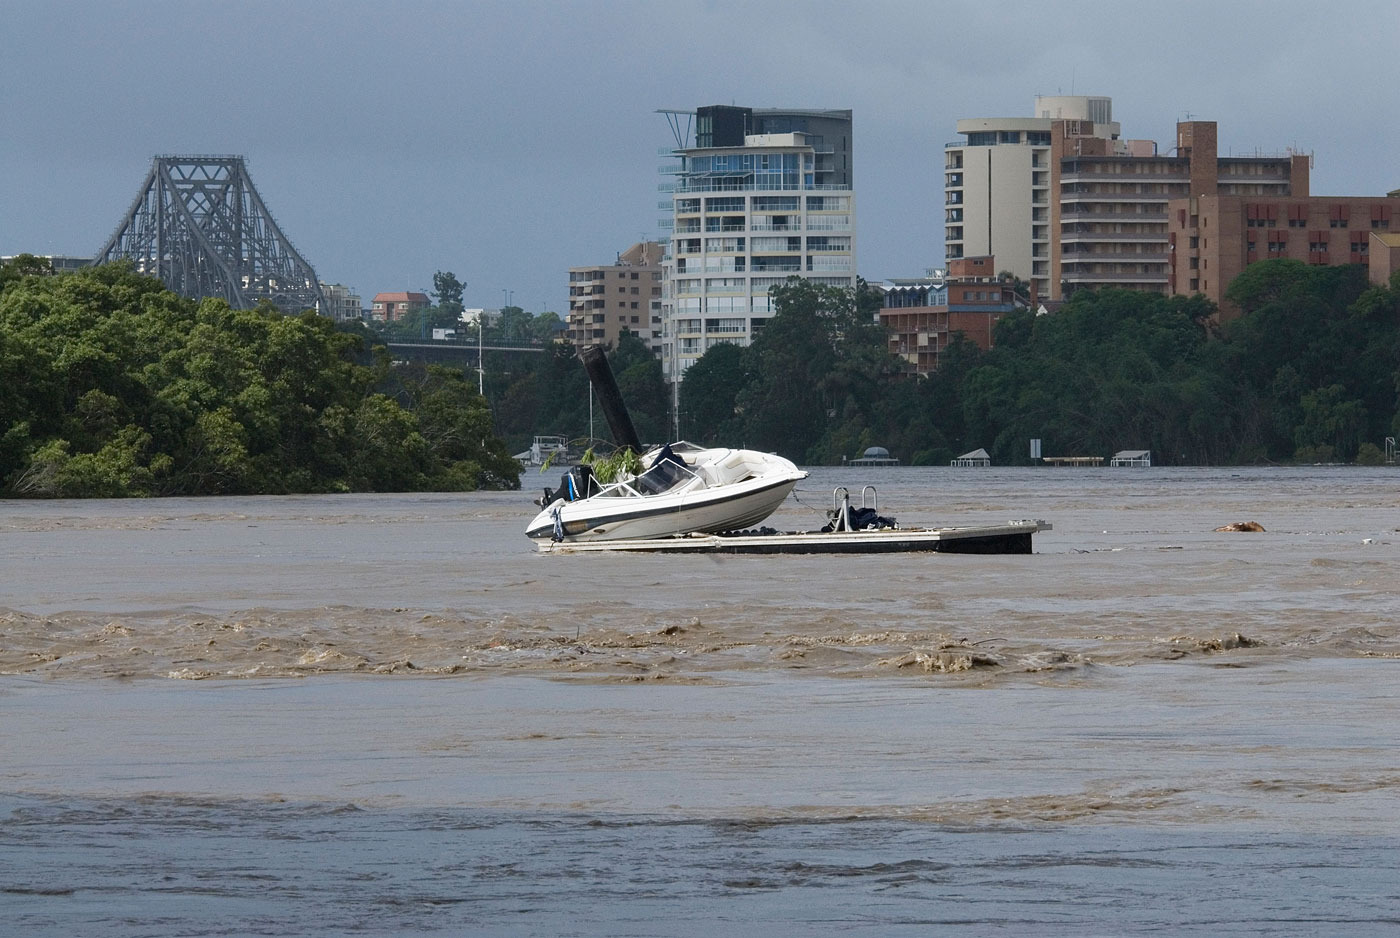 2011 Queensland Floods: The Big Wet